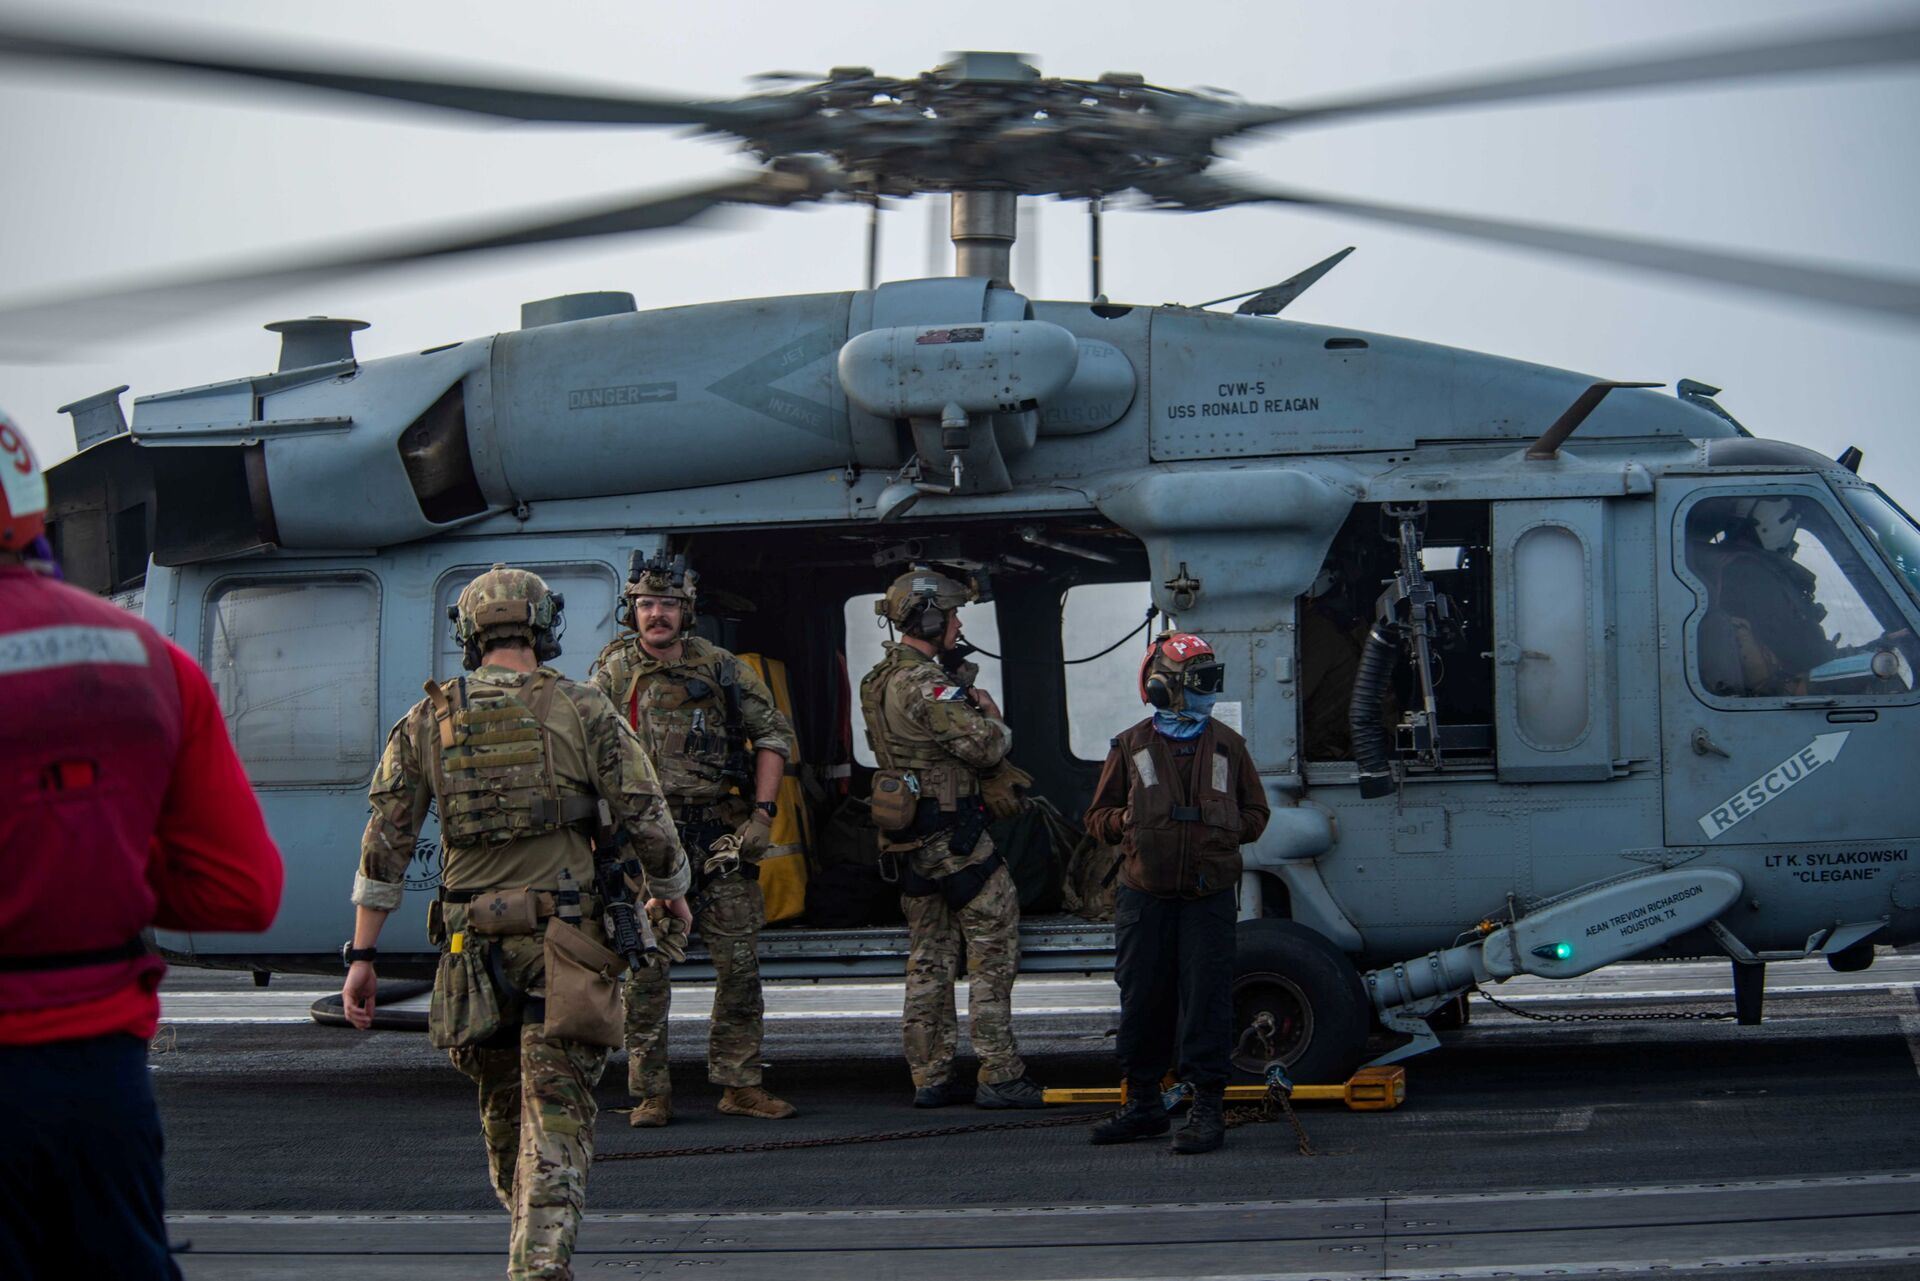 Sailors assigned to Explosive Ordnance Disposal Mobile Unit (EODMU) 5 board an MH-60S Sea Hawk helicopter, attached to the Golden Falcons of Helicopter Sea Combat Squadron (HSC) 12, are seen on the flight deck of aircraft carrier USS Ronald Reagan (CVN 76), in response to a call for assistance from the Mercer Street, a Japanese-owned Liberian-flagged tanker managed by Israeli-owned Zodiac Maritime, in the Arabian Sea July 30, 2021. Picture taken July 30, 2021. U.S. - Sputnik International, 1920, 07.09.2021